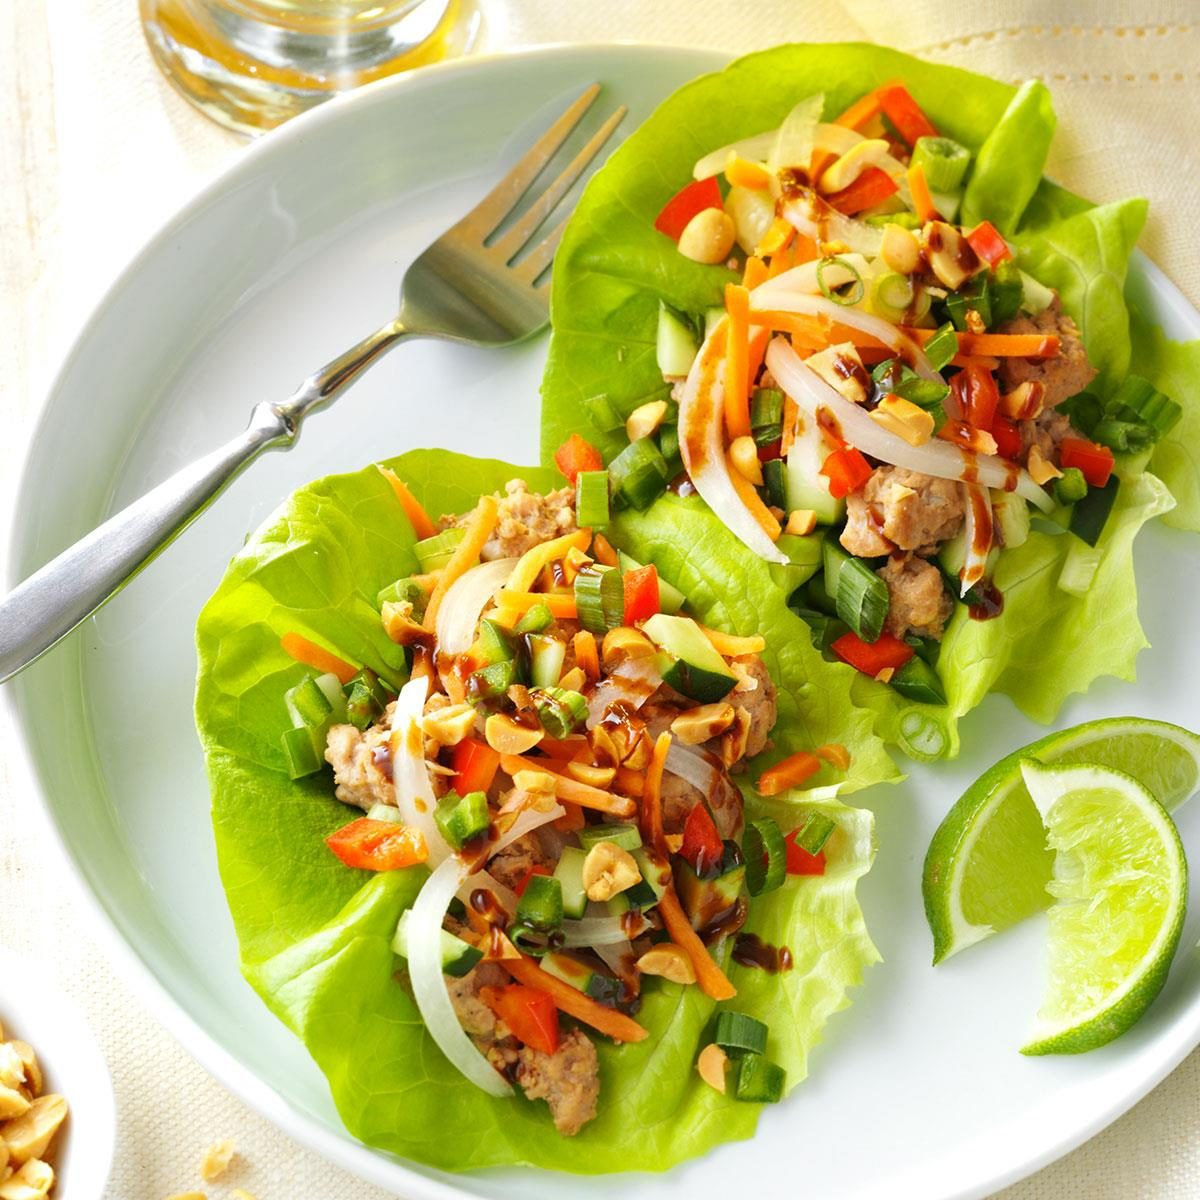 Wednesday: Vietnamese Pork Lettuce Wraps